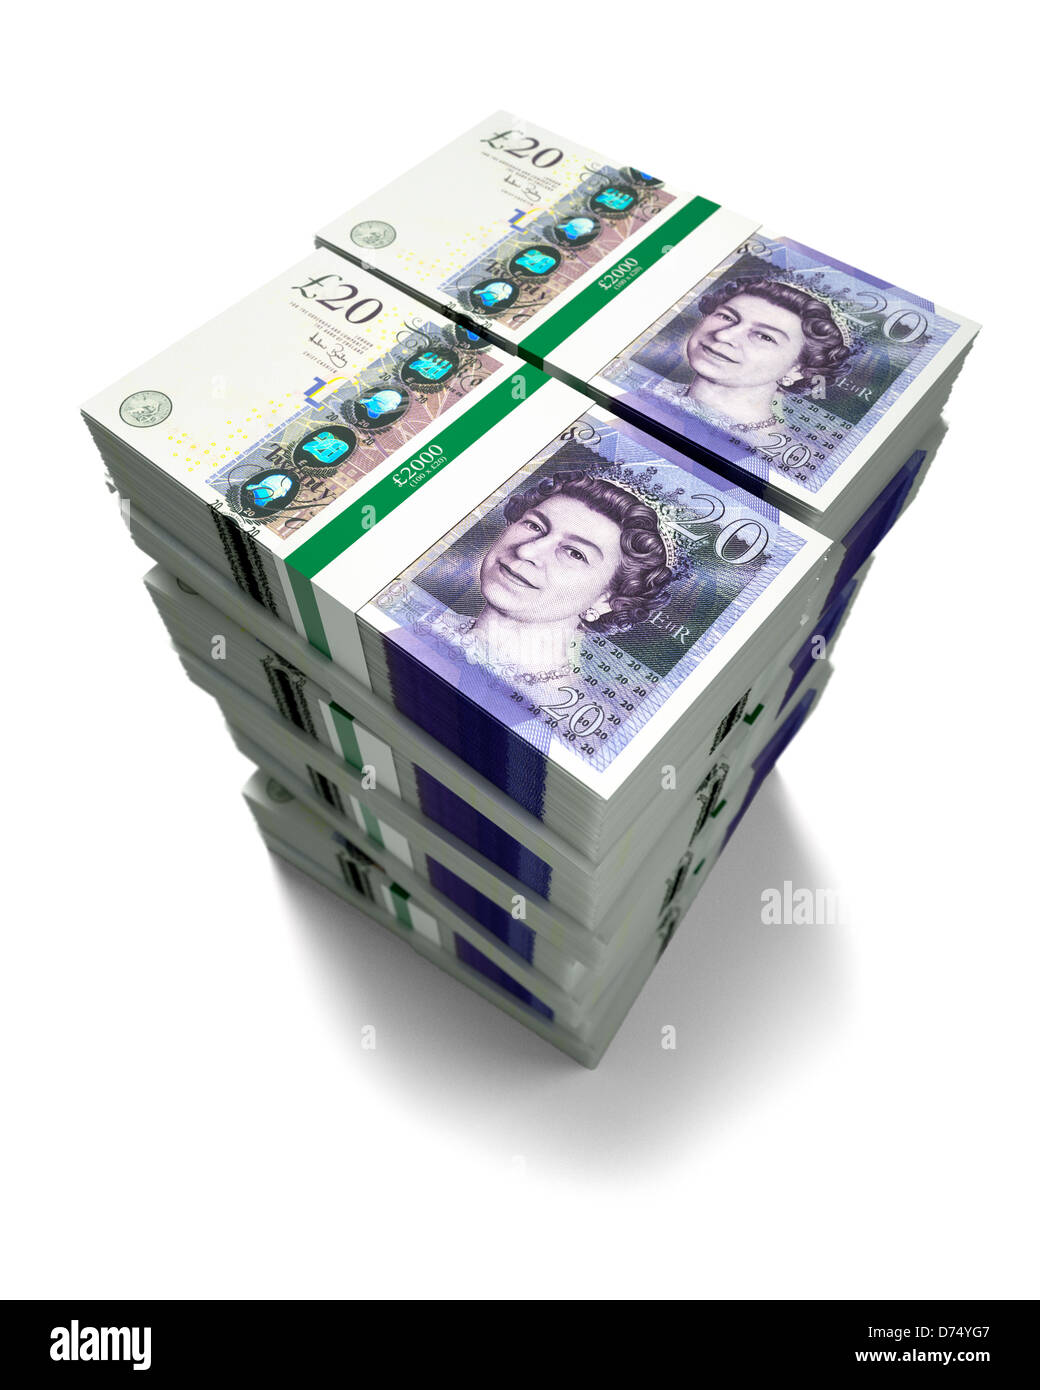 £20 pound notes on white background Stock Photo